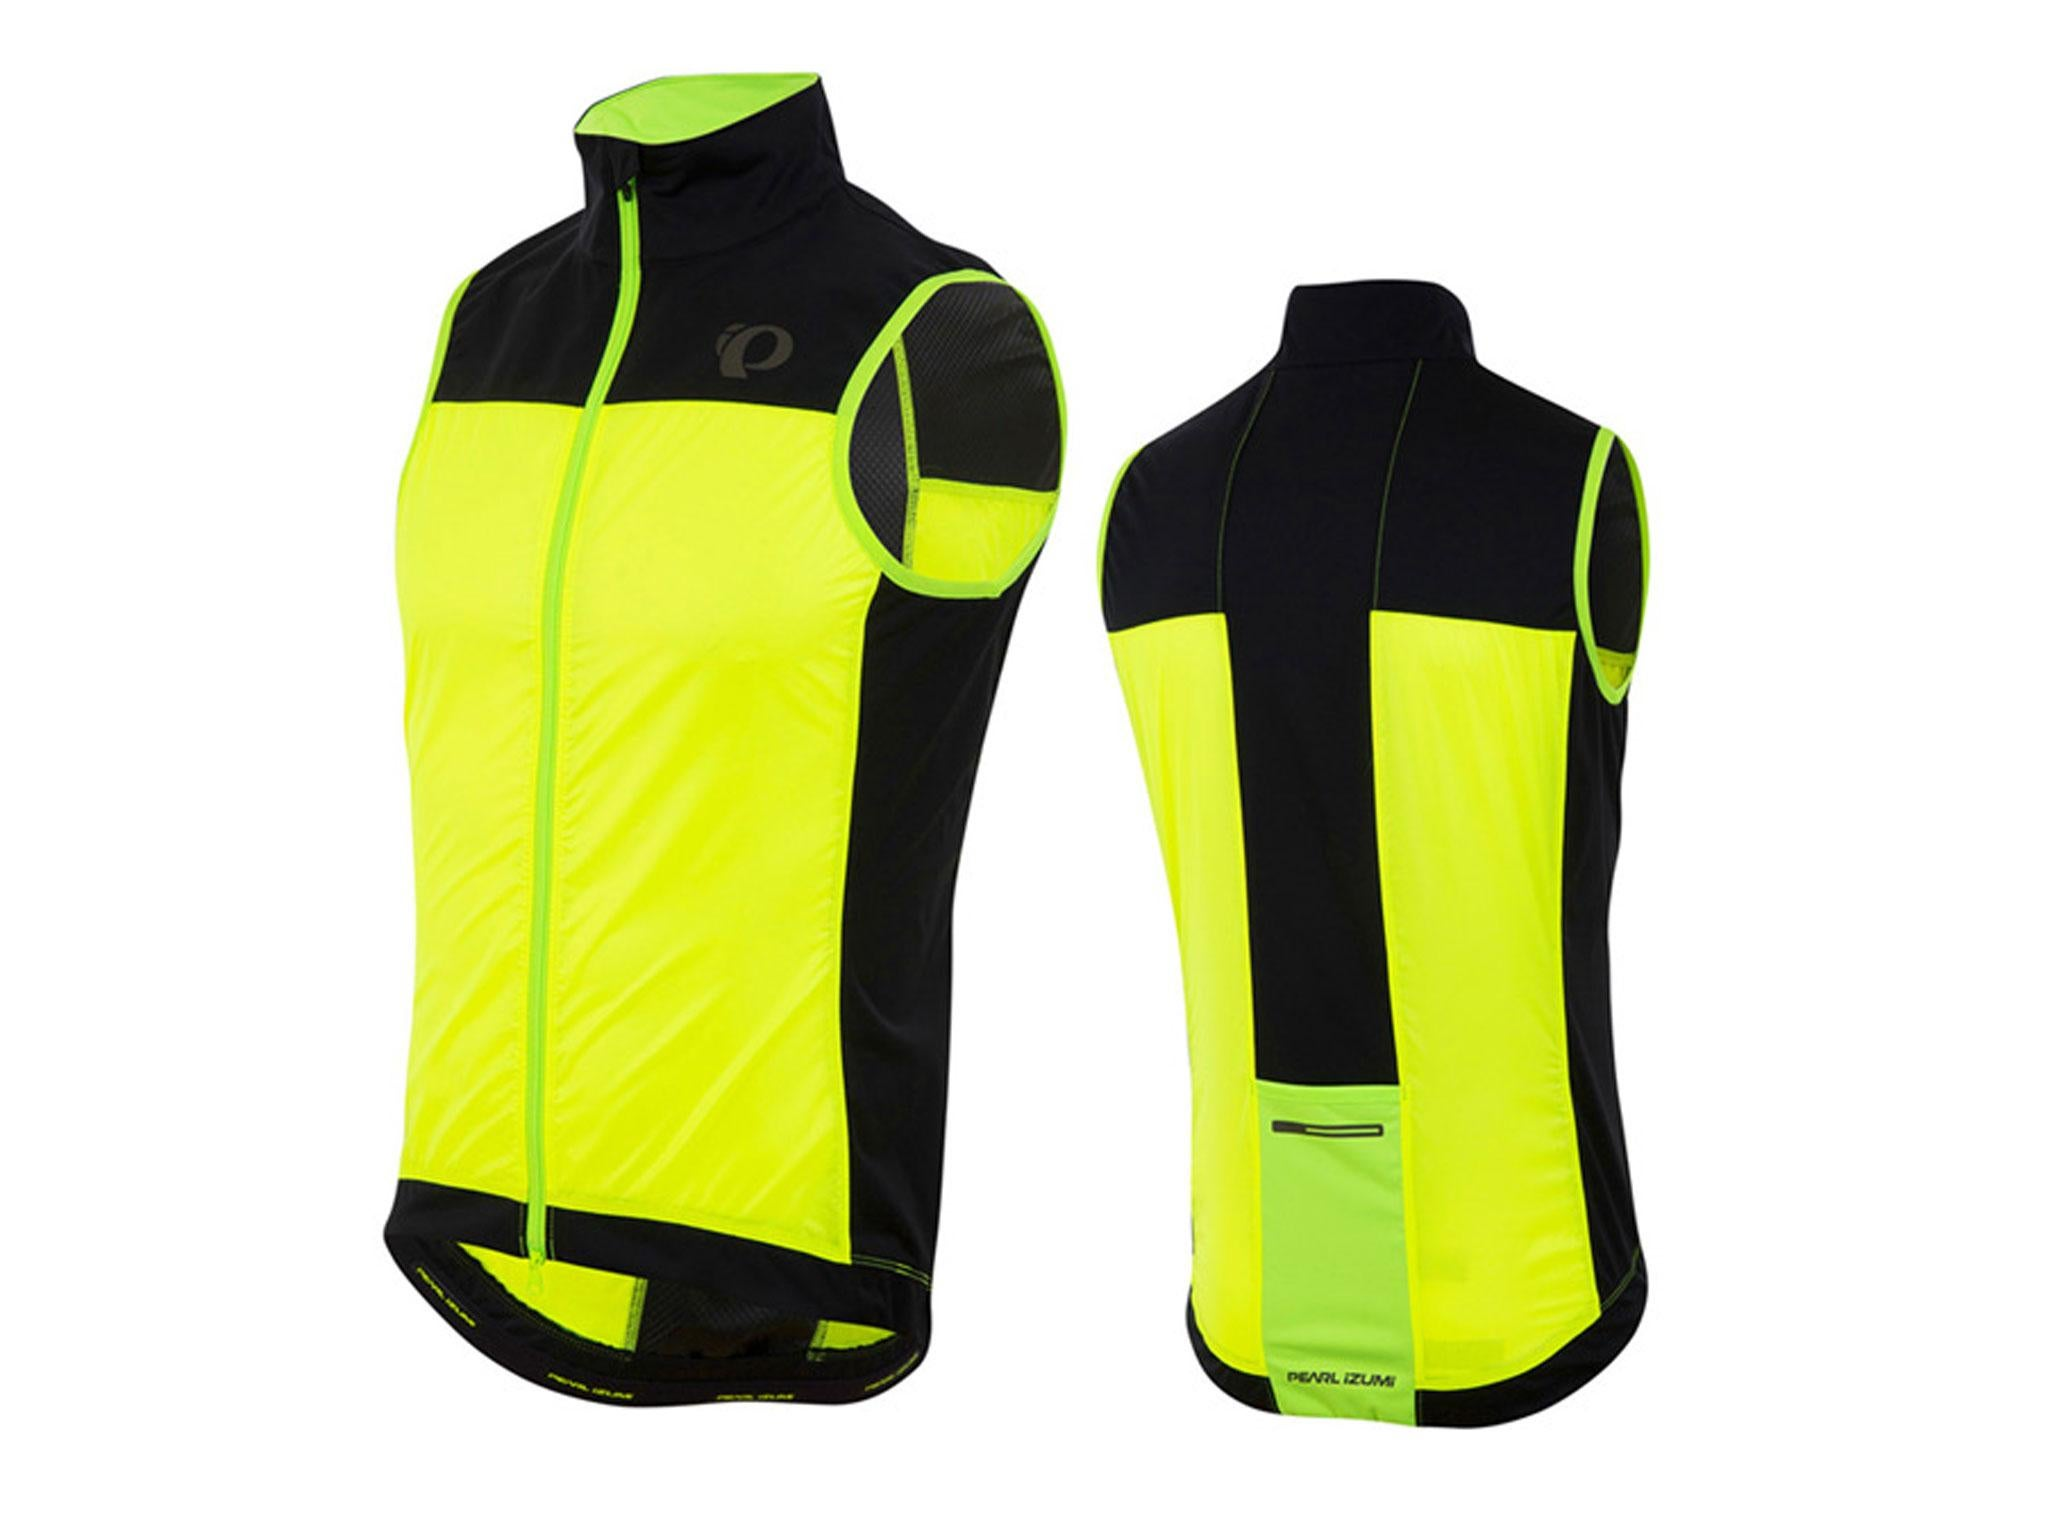 f7b6cb652 Even the most myopic motorists can t fail to spot this bold black and  fluo-yellow design. Lightweight and very packable